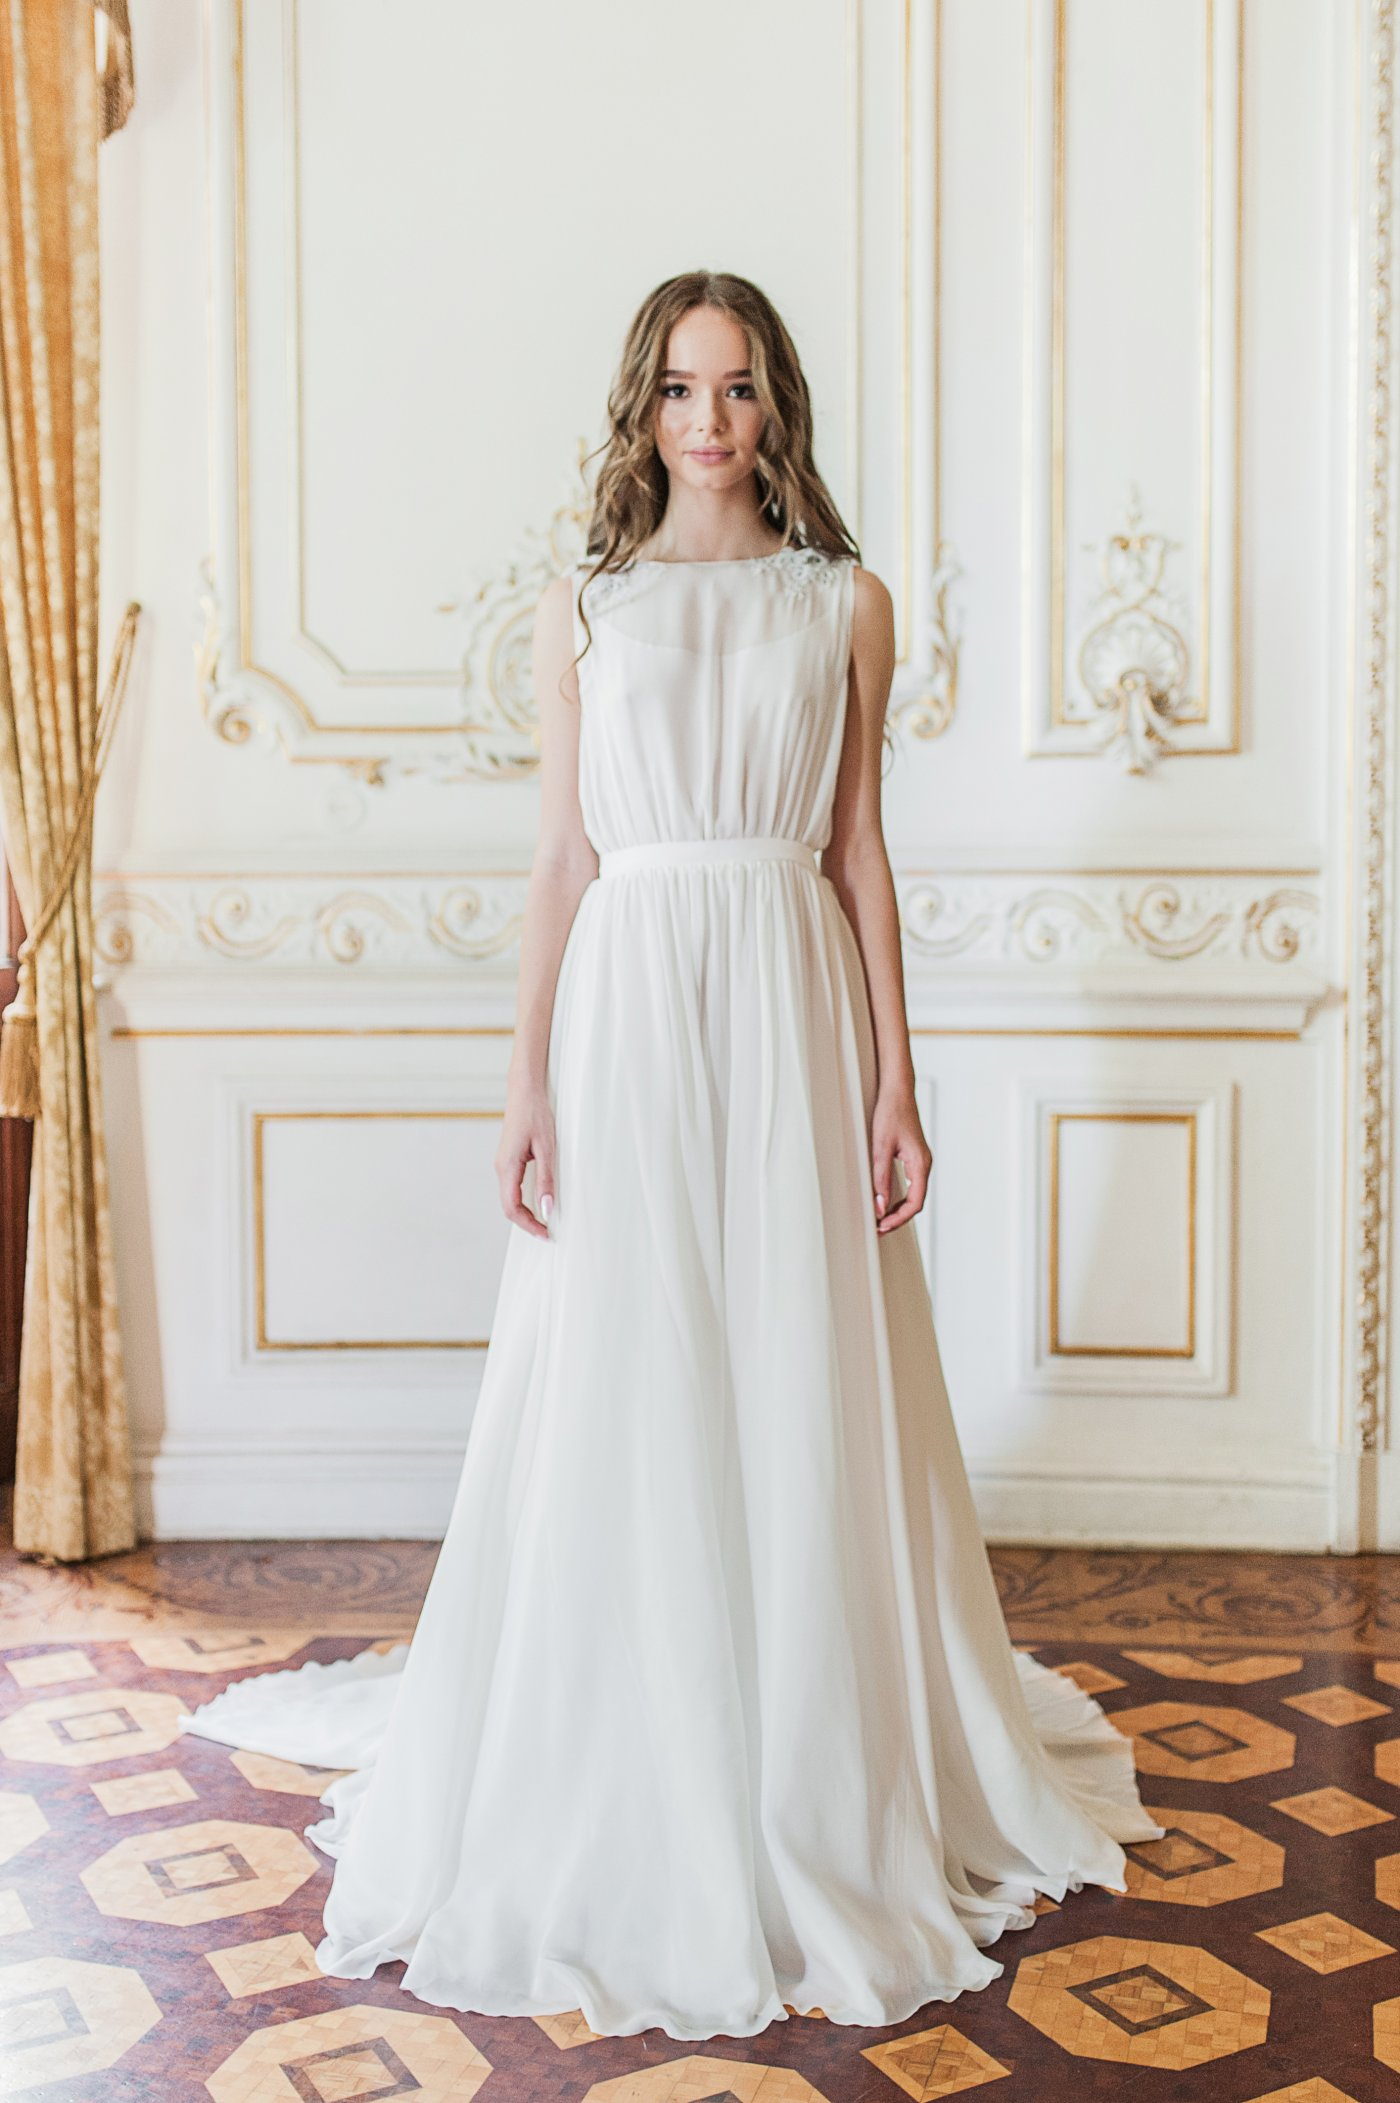 Off-white wedding gown with sheer embroidered back | Cathy Telle